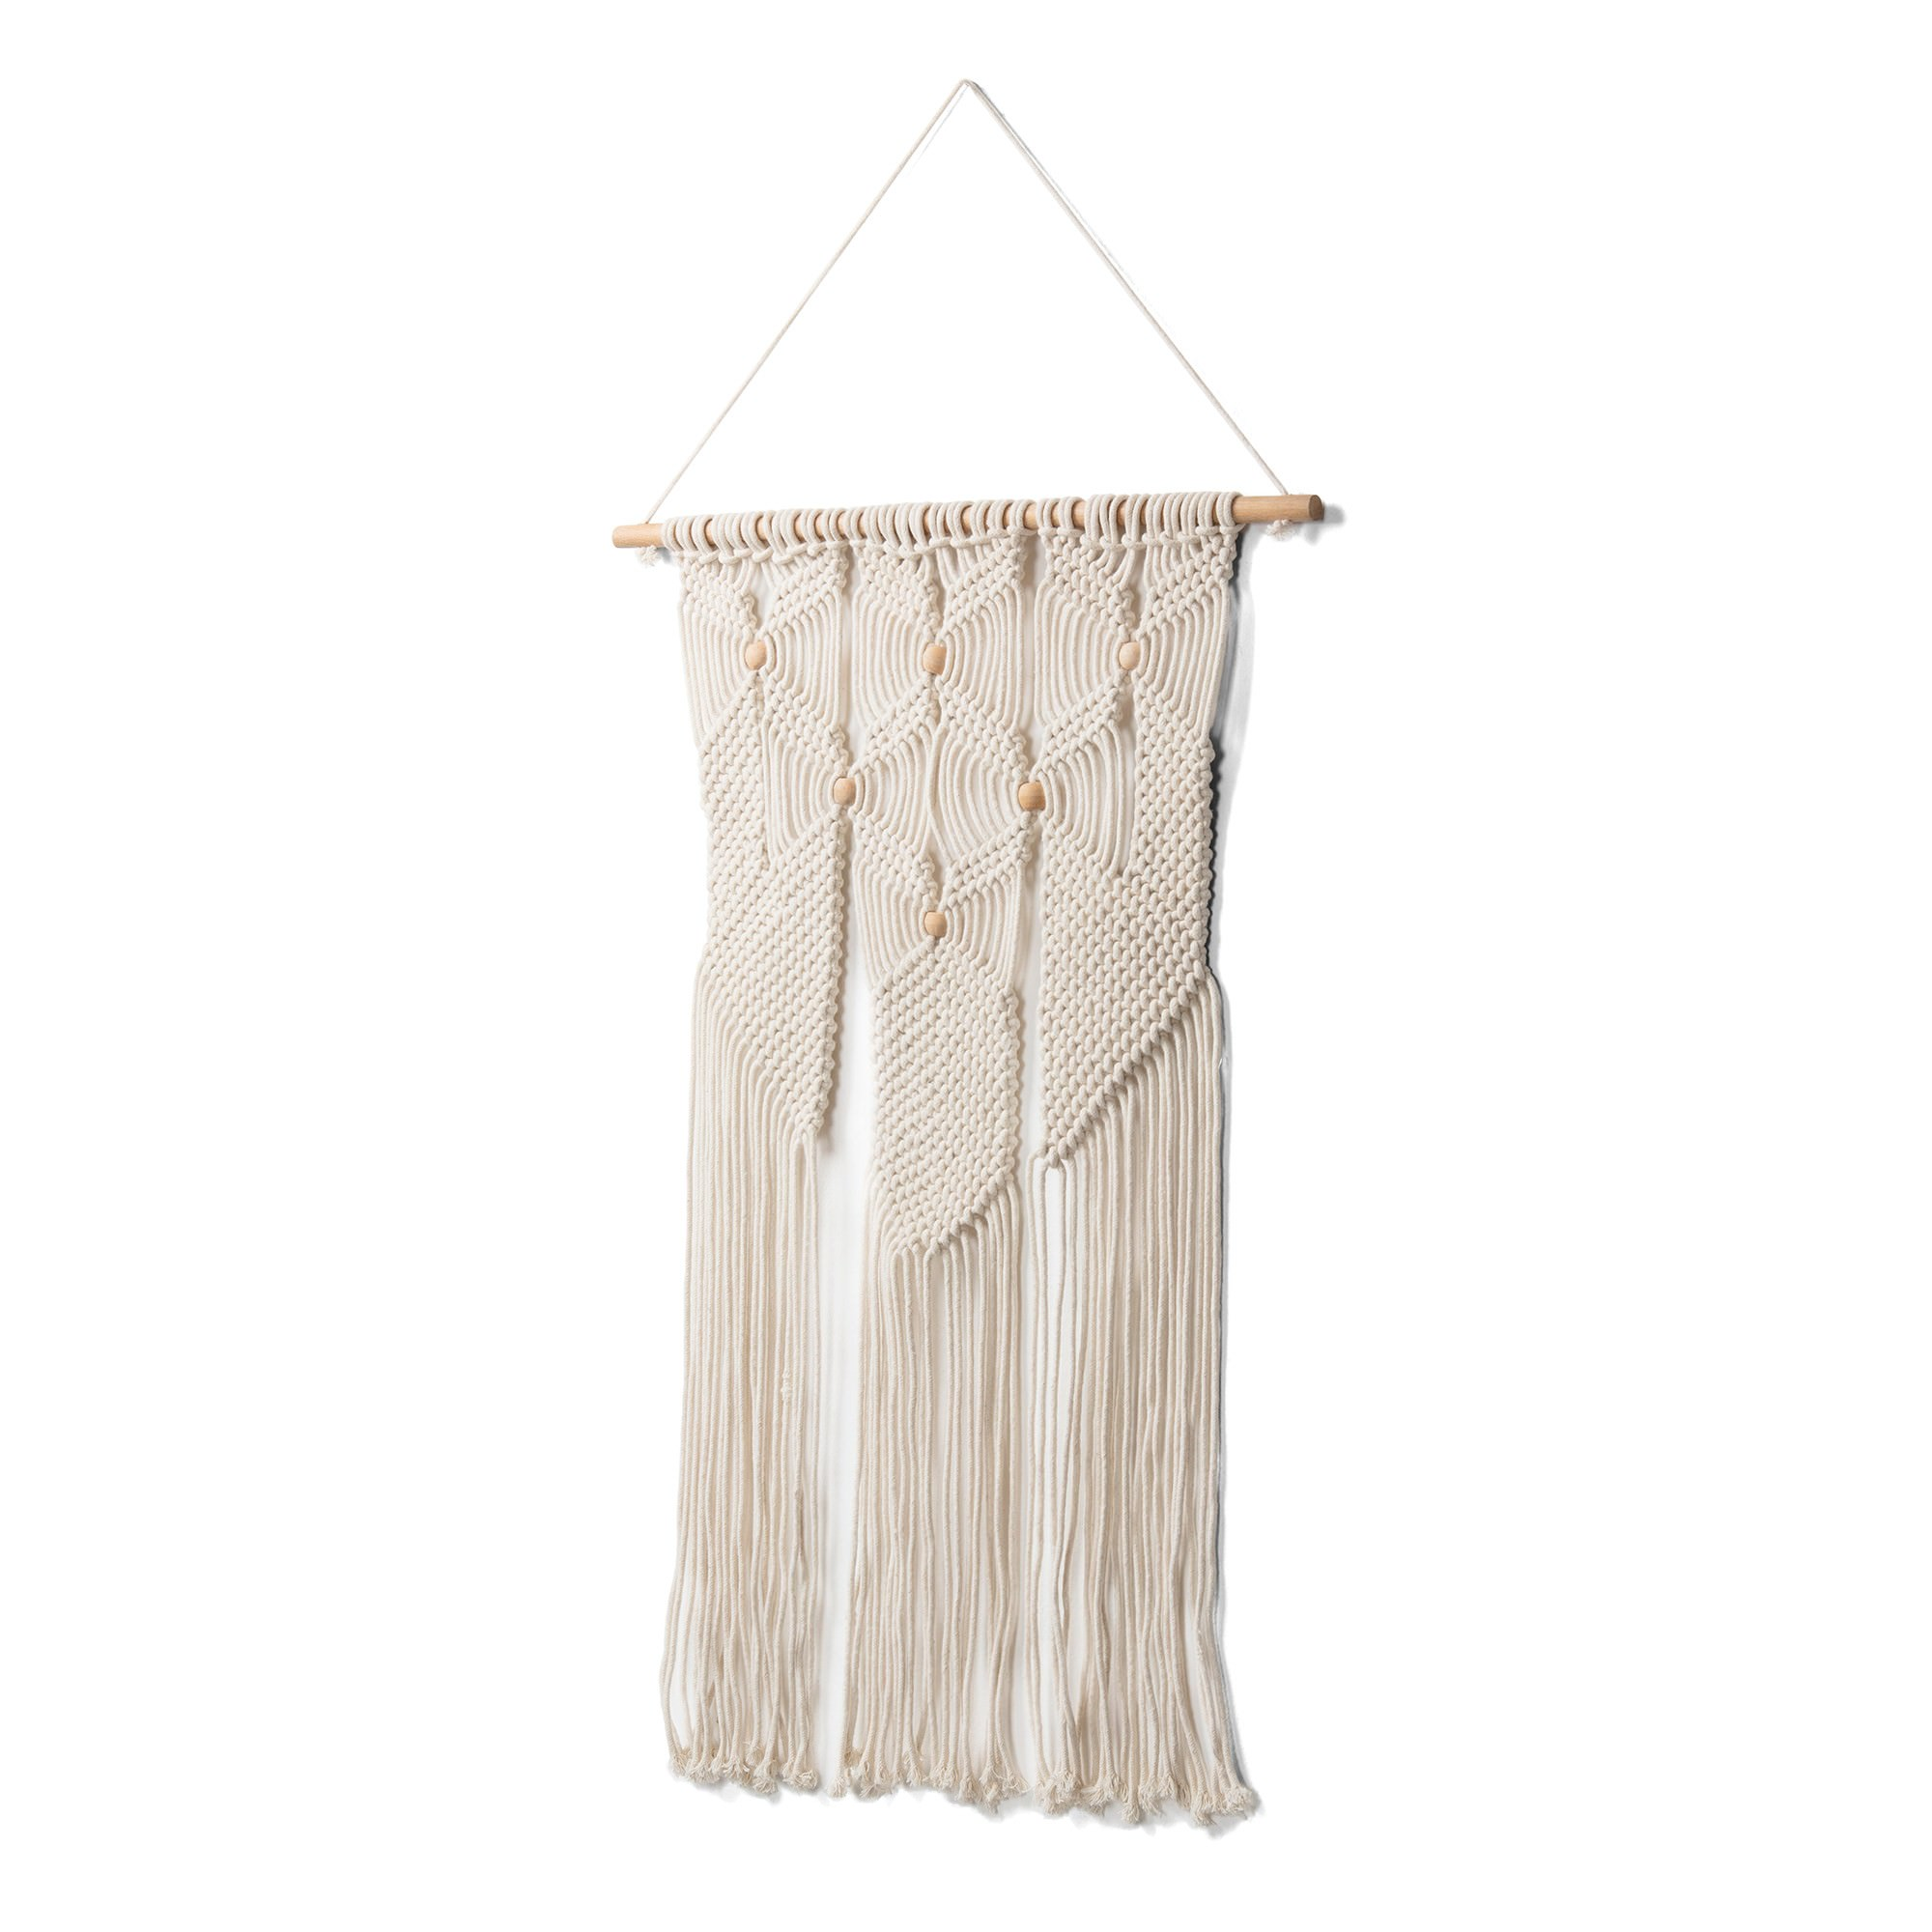 Eilena Hand Knited Cotton Macrame Wall Tapestry